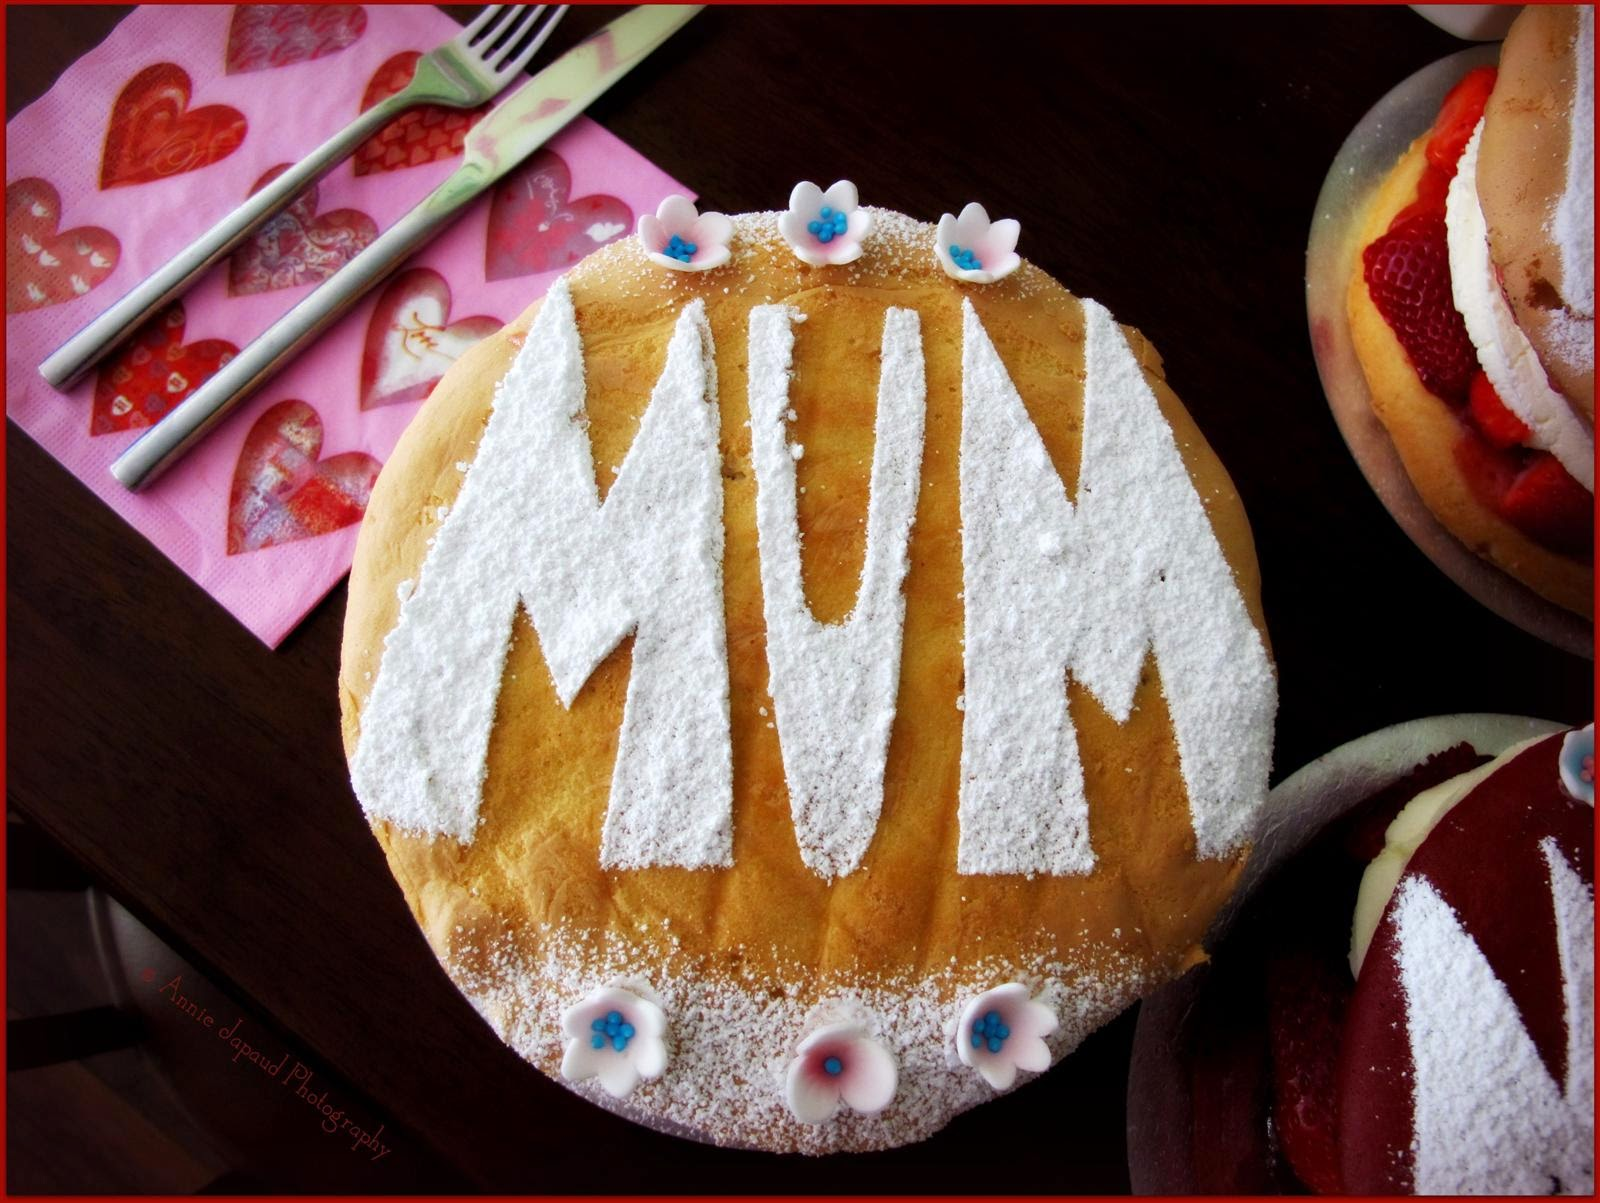 Victoria sponge cake with mum written on it